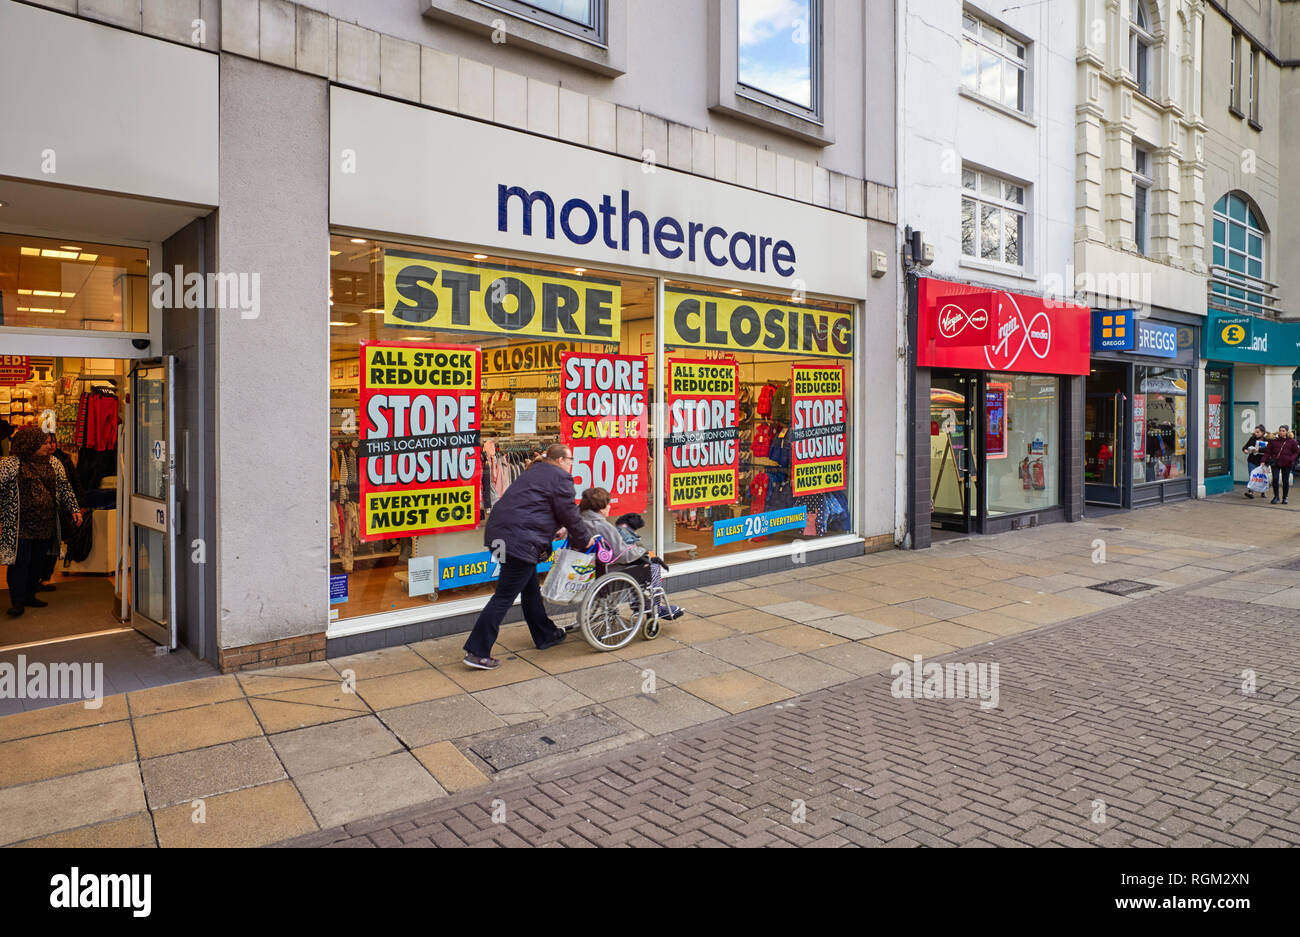 Mothercare store closing down in Commercial Road shopping centre, Portsmouth - Stock Image